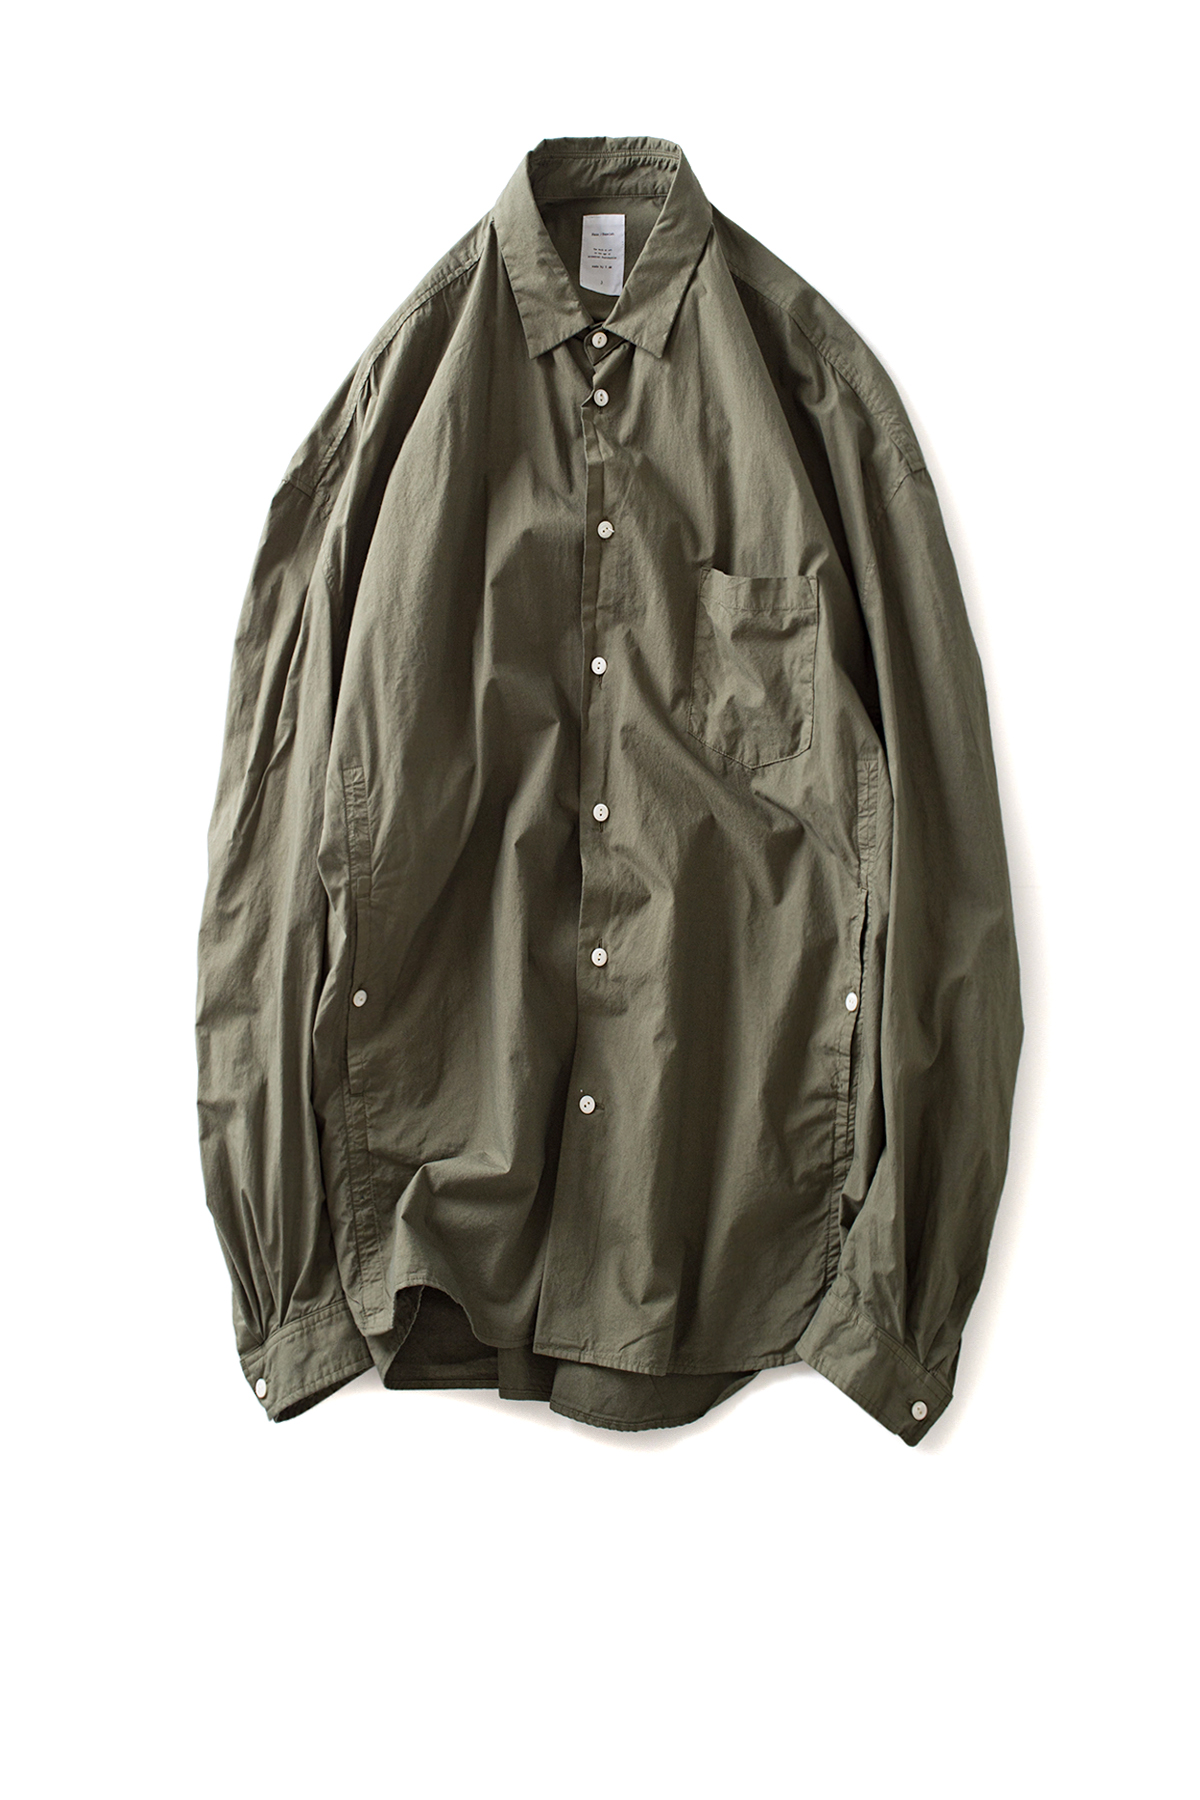 Name : Oversized Shirt (Olive)